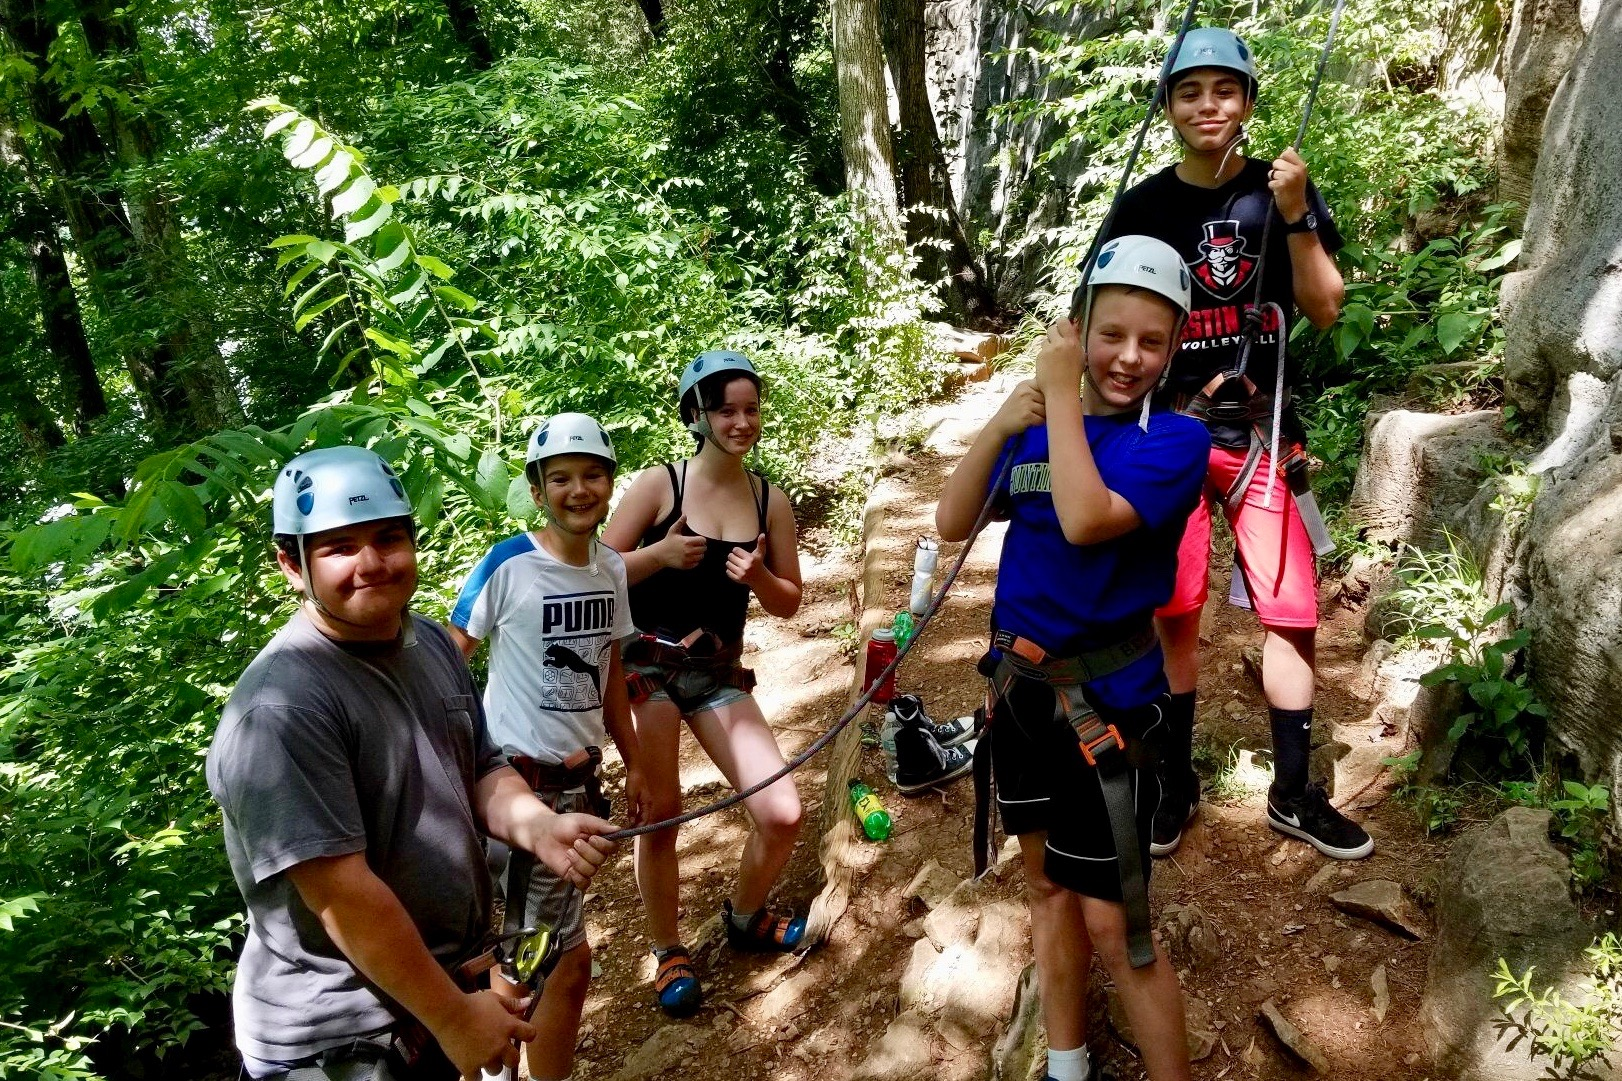 Spots still available at Govs Outdoors teen adventure camp